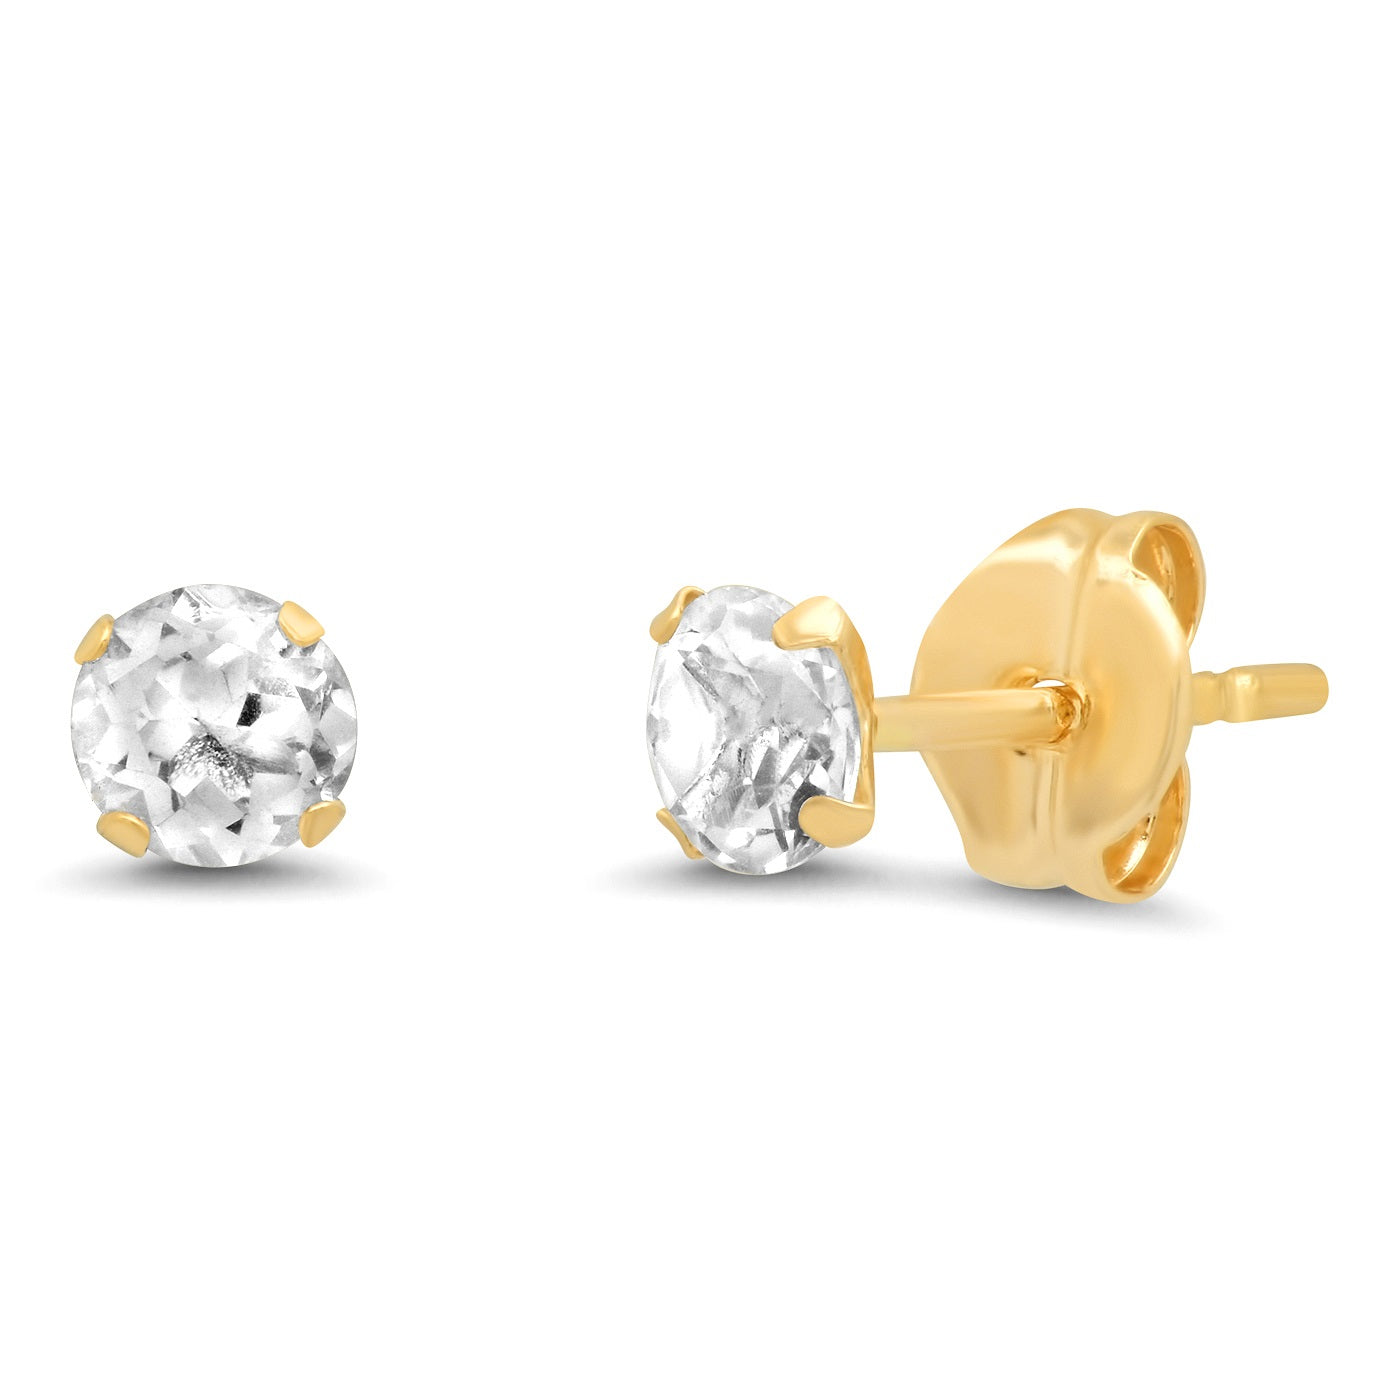 TAI Fine 14K Gold 3.5MM White Topaz Studs